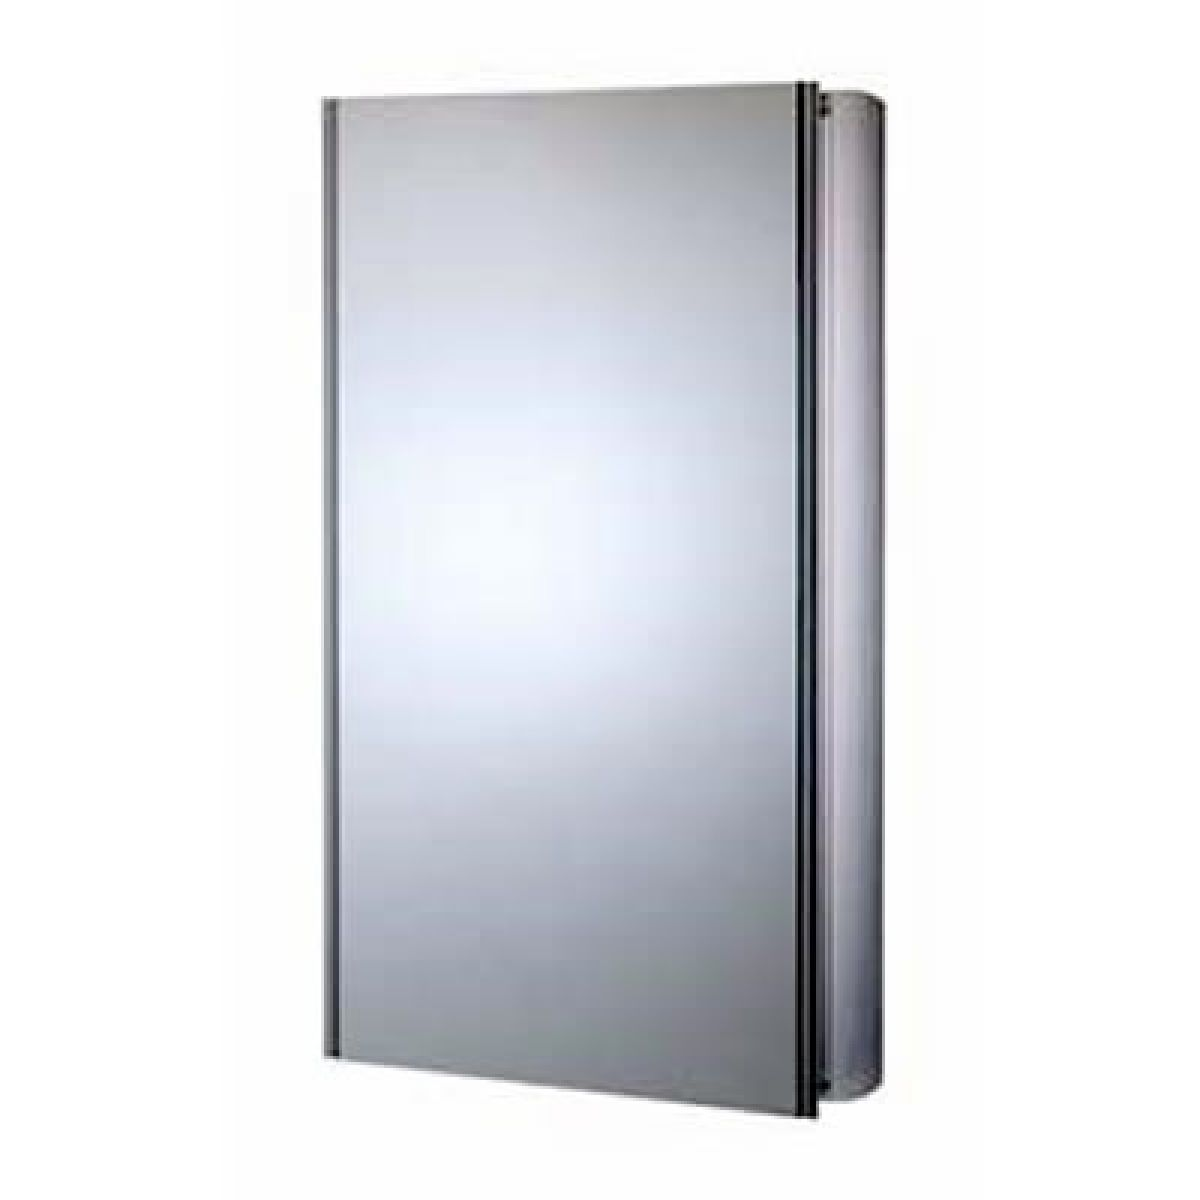 Slimline Wall Cabinet Roper Rhodes Ascension Limit Slimline Cabinet Uk Bathrooms